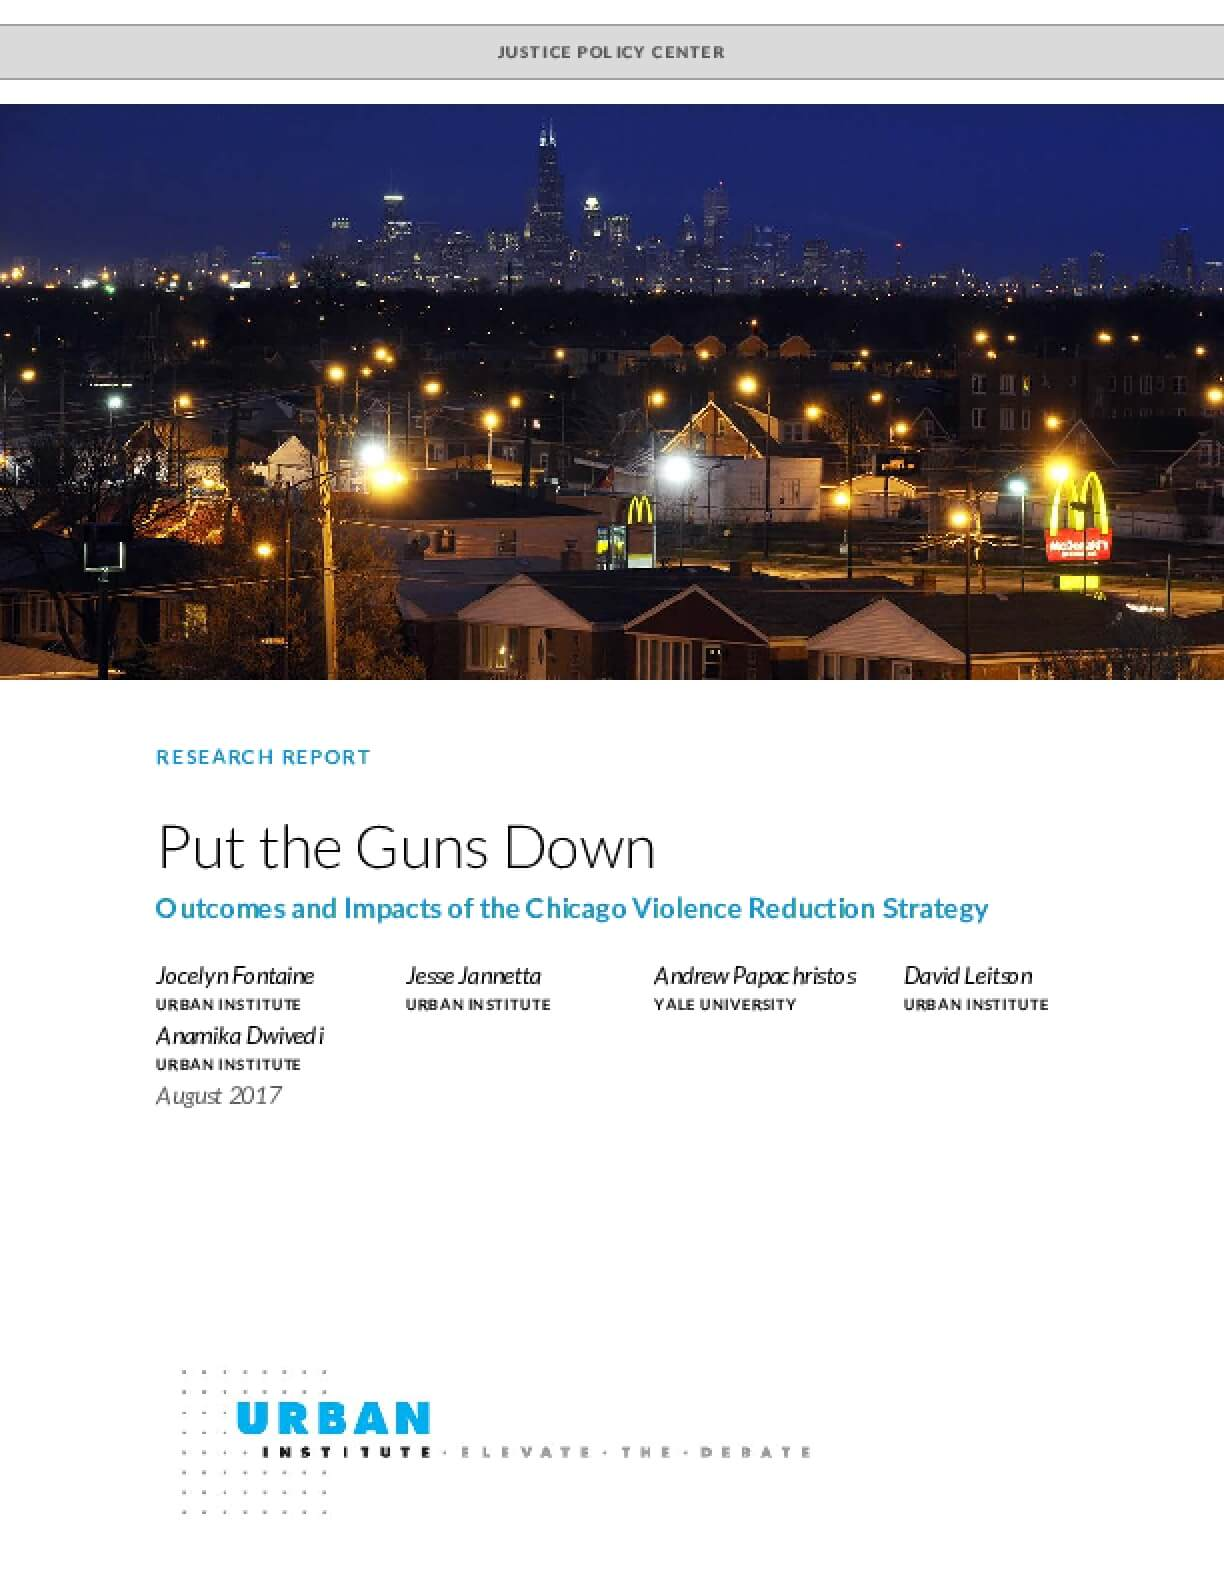 Put the Guns Down: Outcomes and Impacts of the Chicago Violence Reduction Strategy